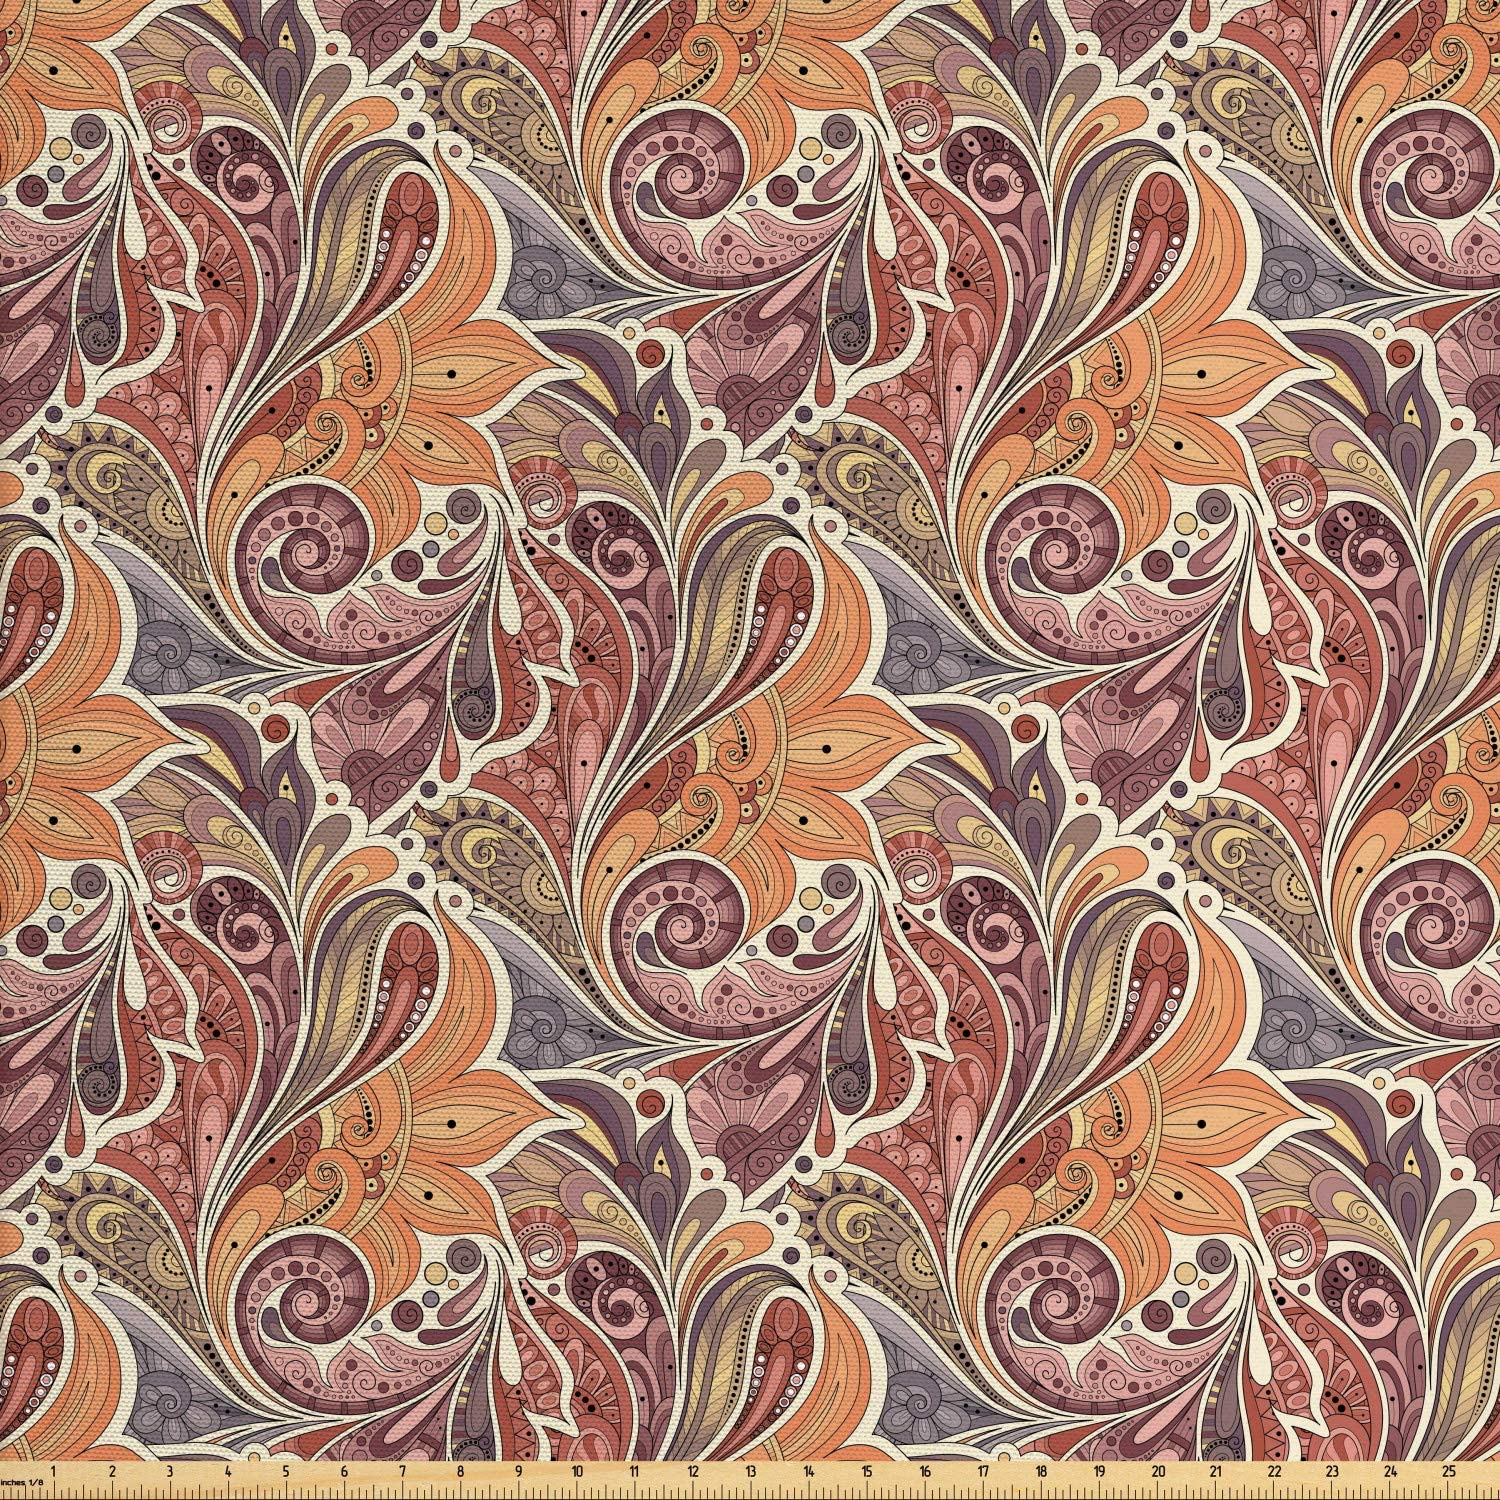 Ambesonne Floral Fabric by The Yard, Traditional Paisley Leaf Pattern with Persian Details Colorful Boho Design, Decorative Fabric for Upholstery and Home Accents, 1 Yard, Orange Mauve